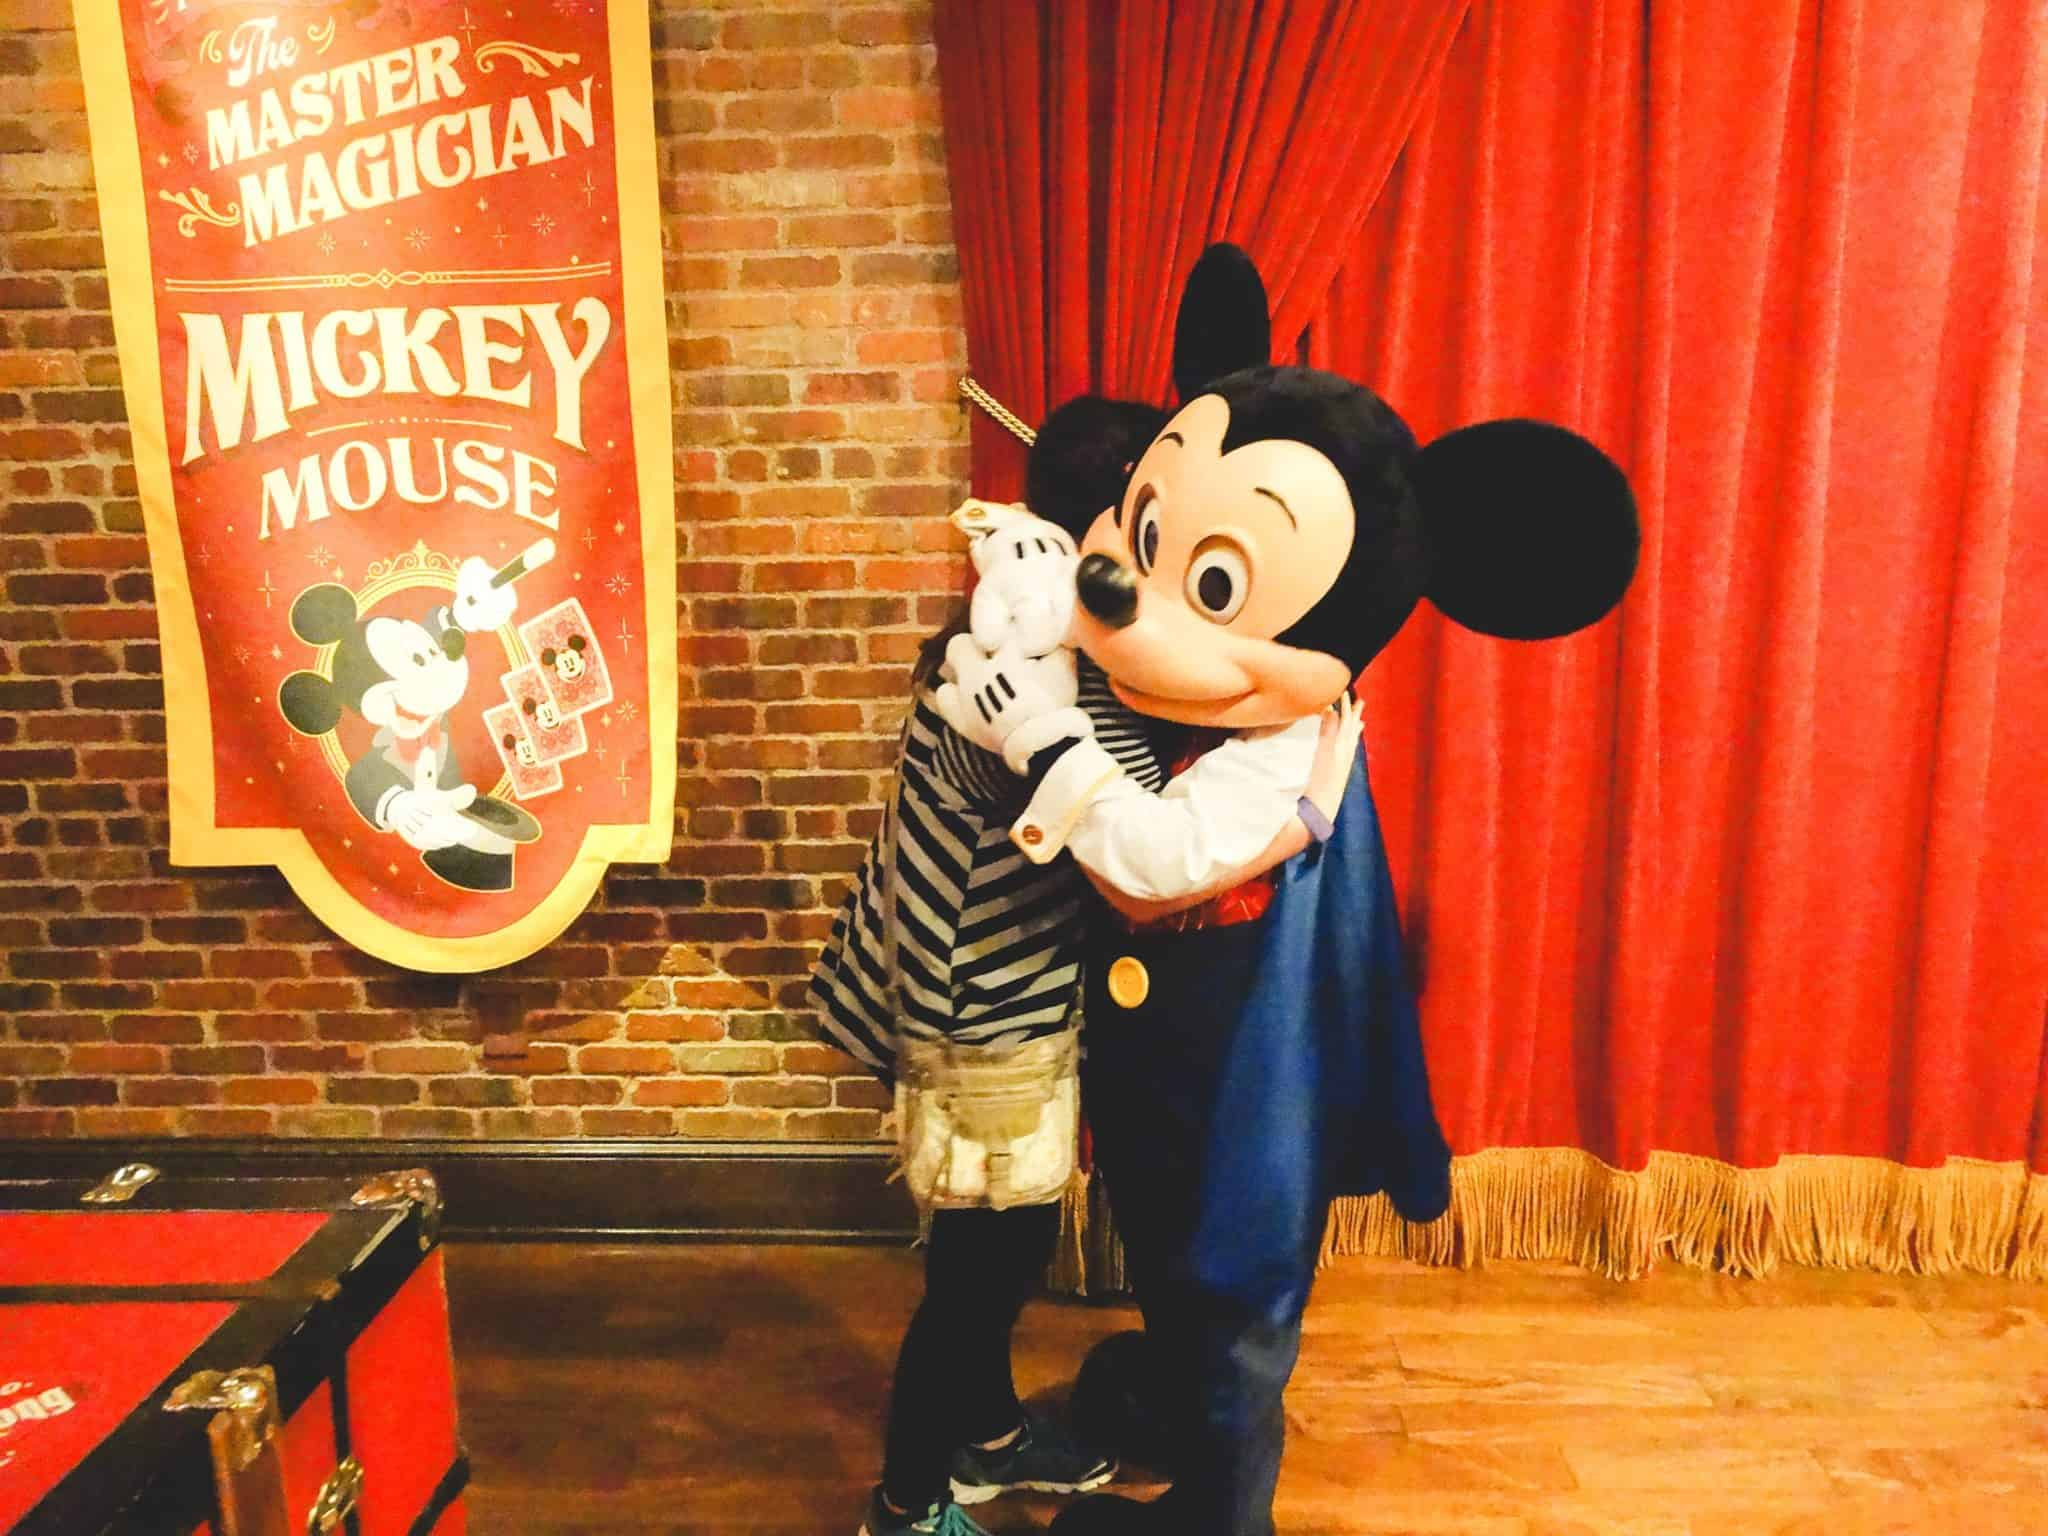 Hug from Mickey